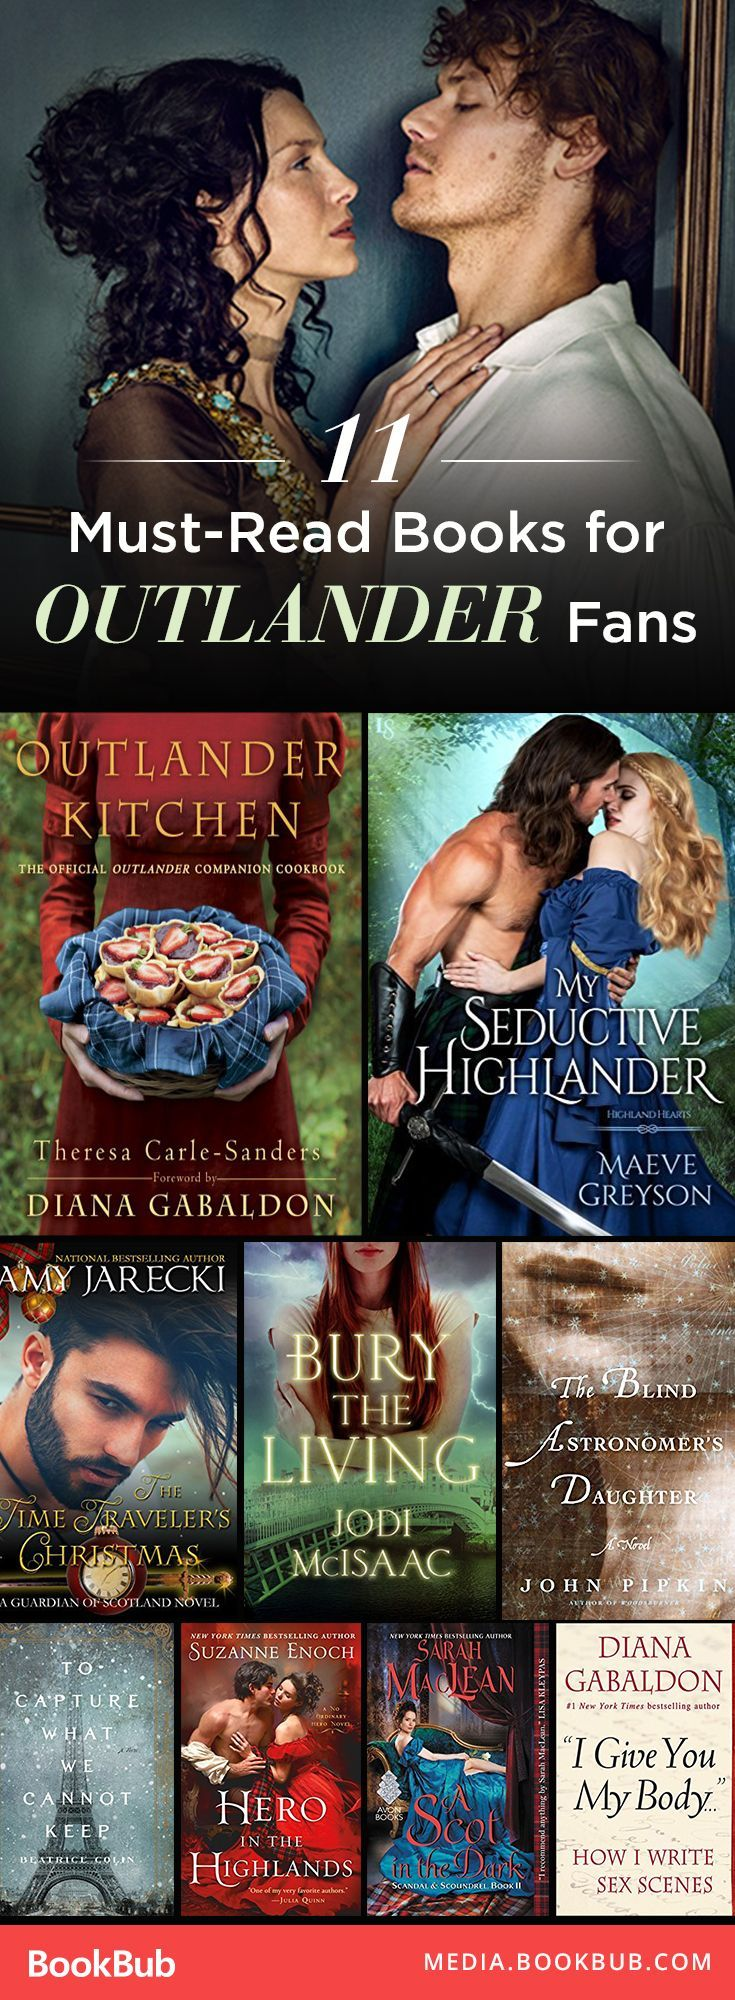 Hunting for books to read if you like Outlander? Check out these 11 great romance books to read next.